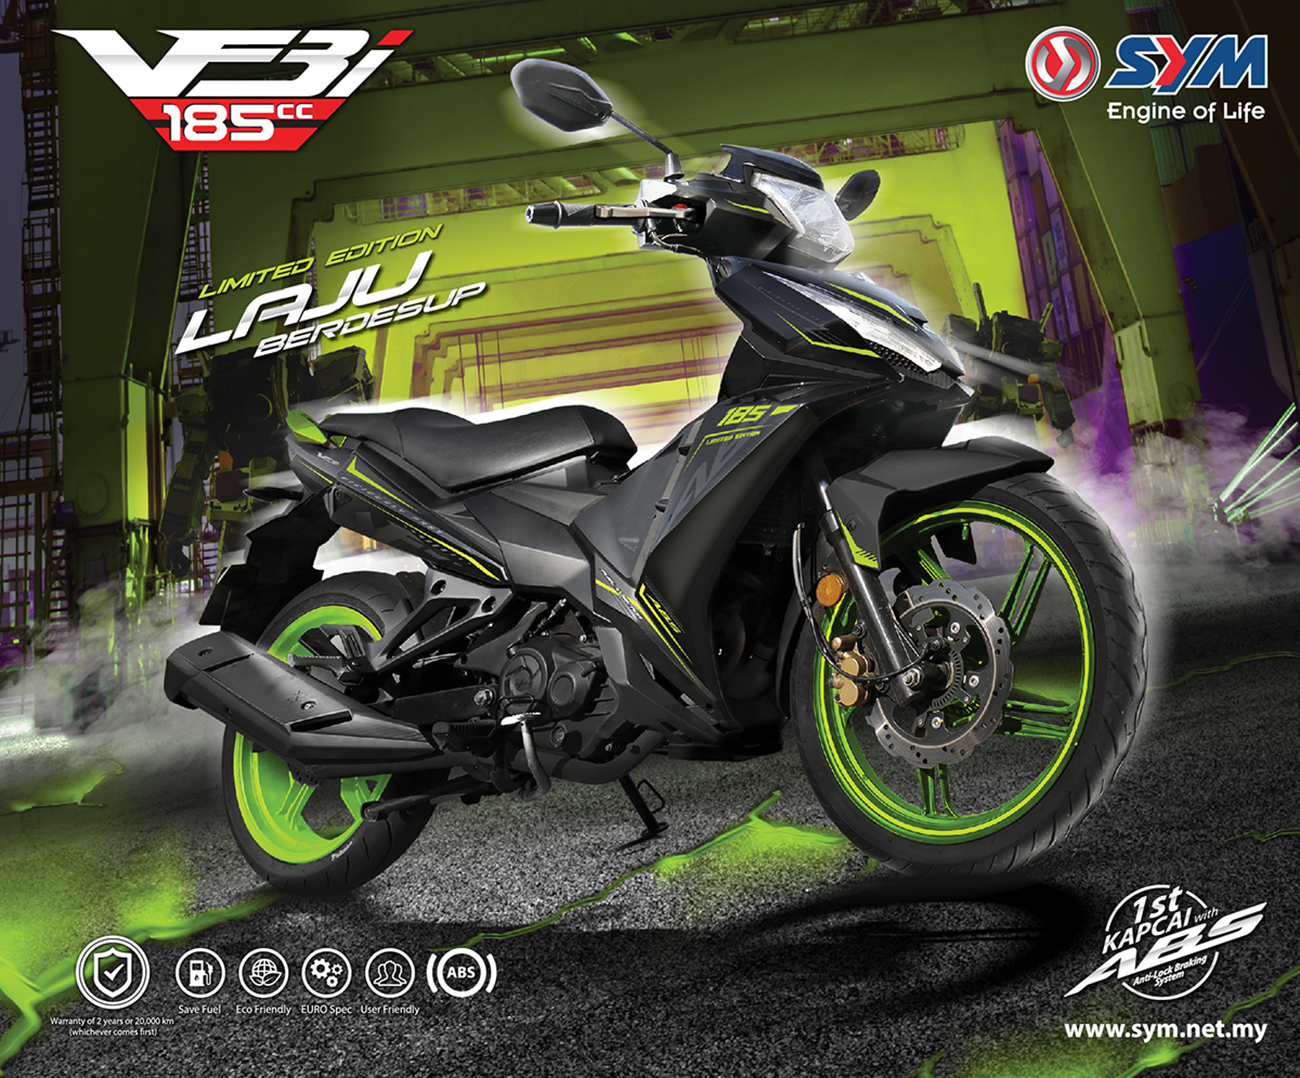 SYM VF3i 185 Limited Edition Marks 70% of Total Booking Out of 5,000 Units!